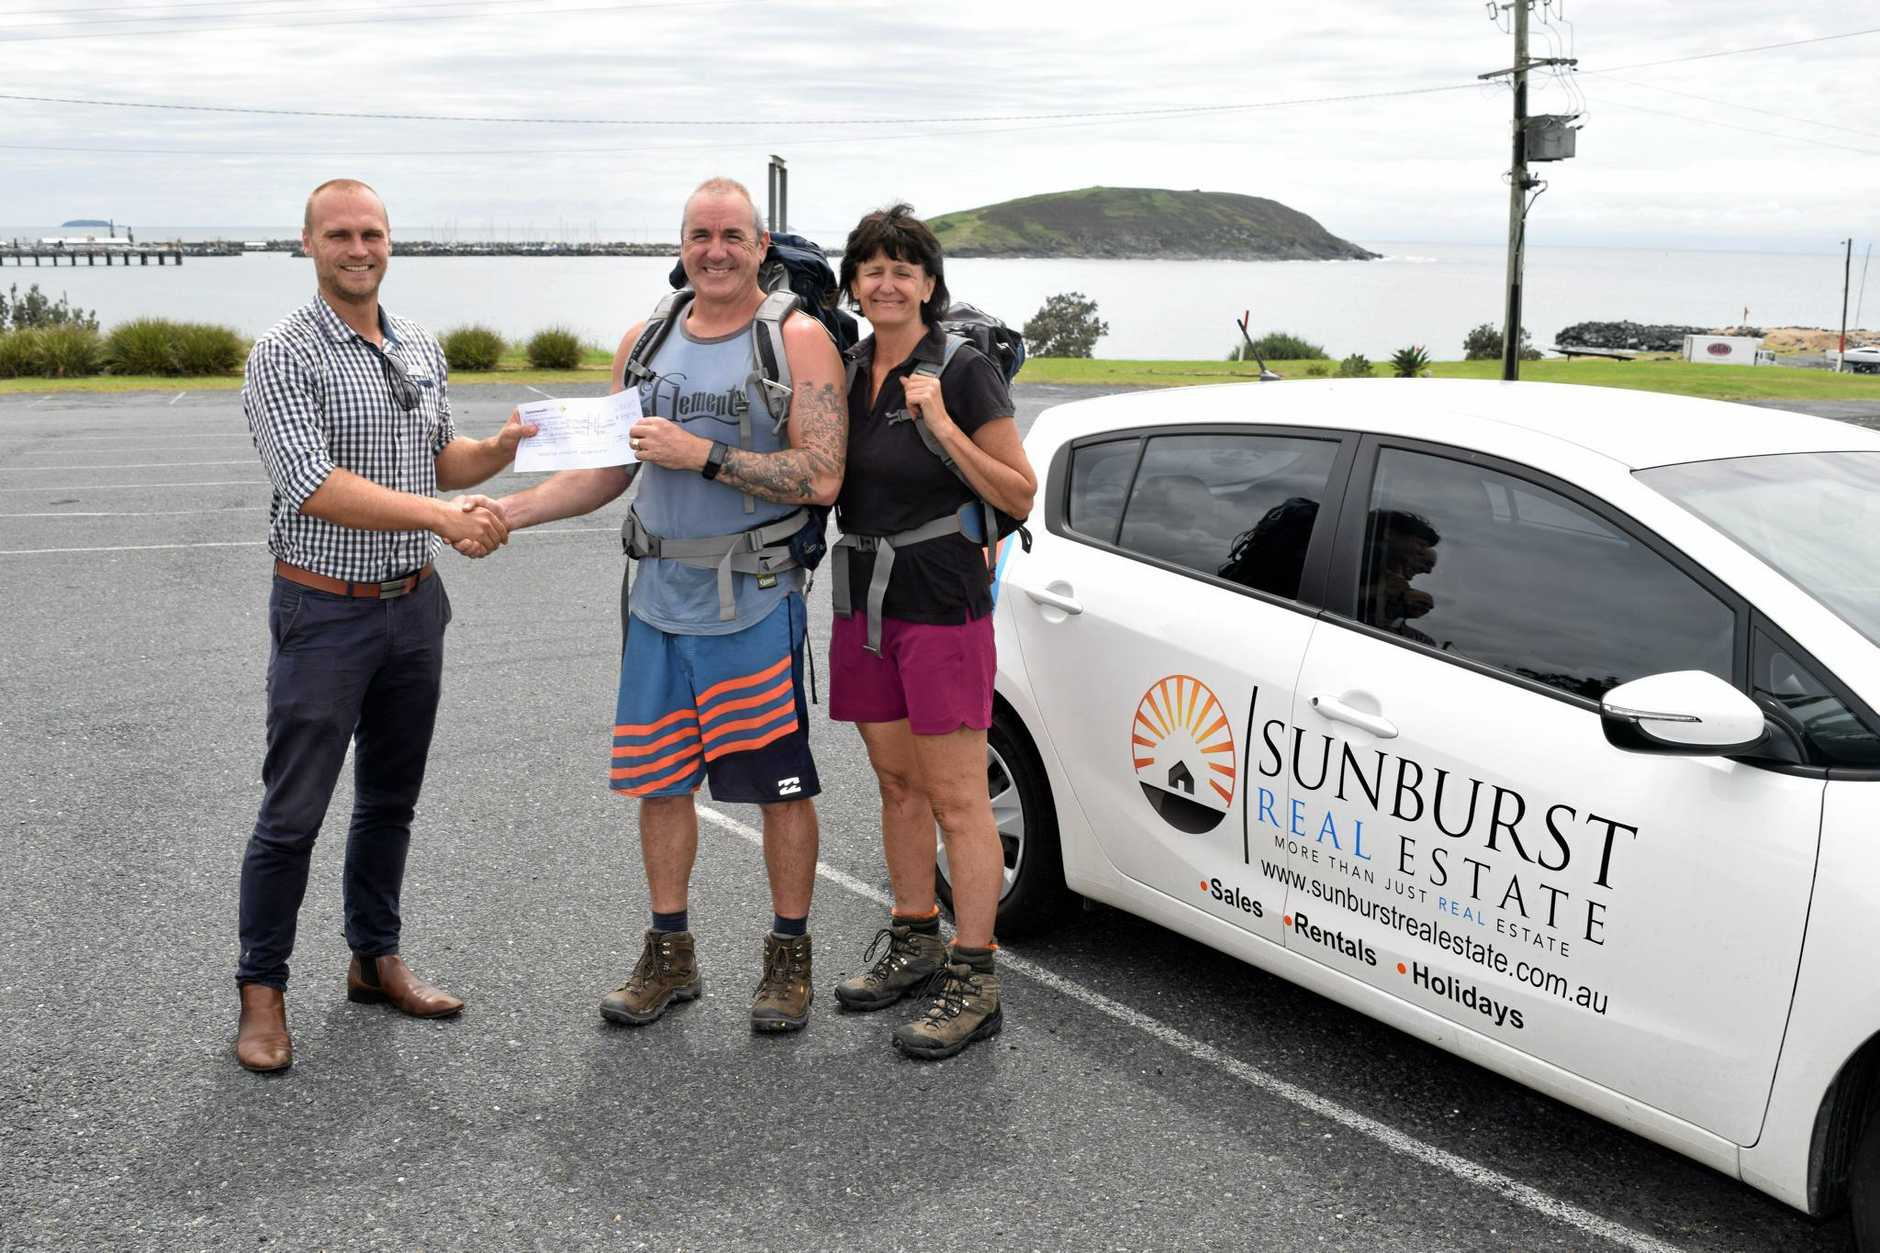 Darcy Kean hands over the first Sunburst cheque to Craig Semple and Lee-Ann Lloyd ahead of their Kokoda trek to raise money for the Black Dog Institute. Coffs Harbour, February 15, 2017.